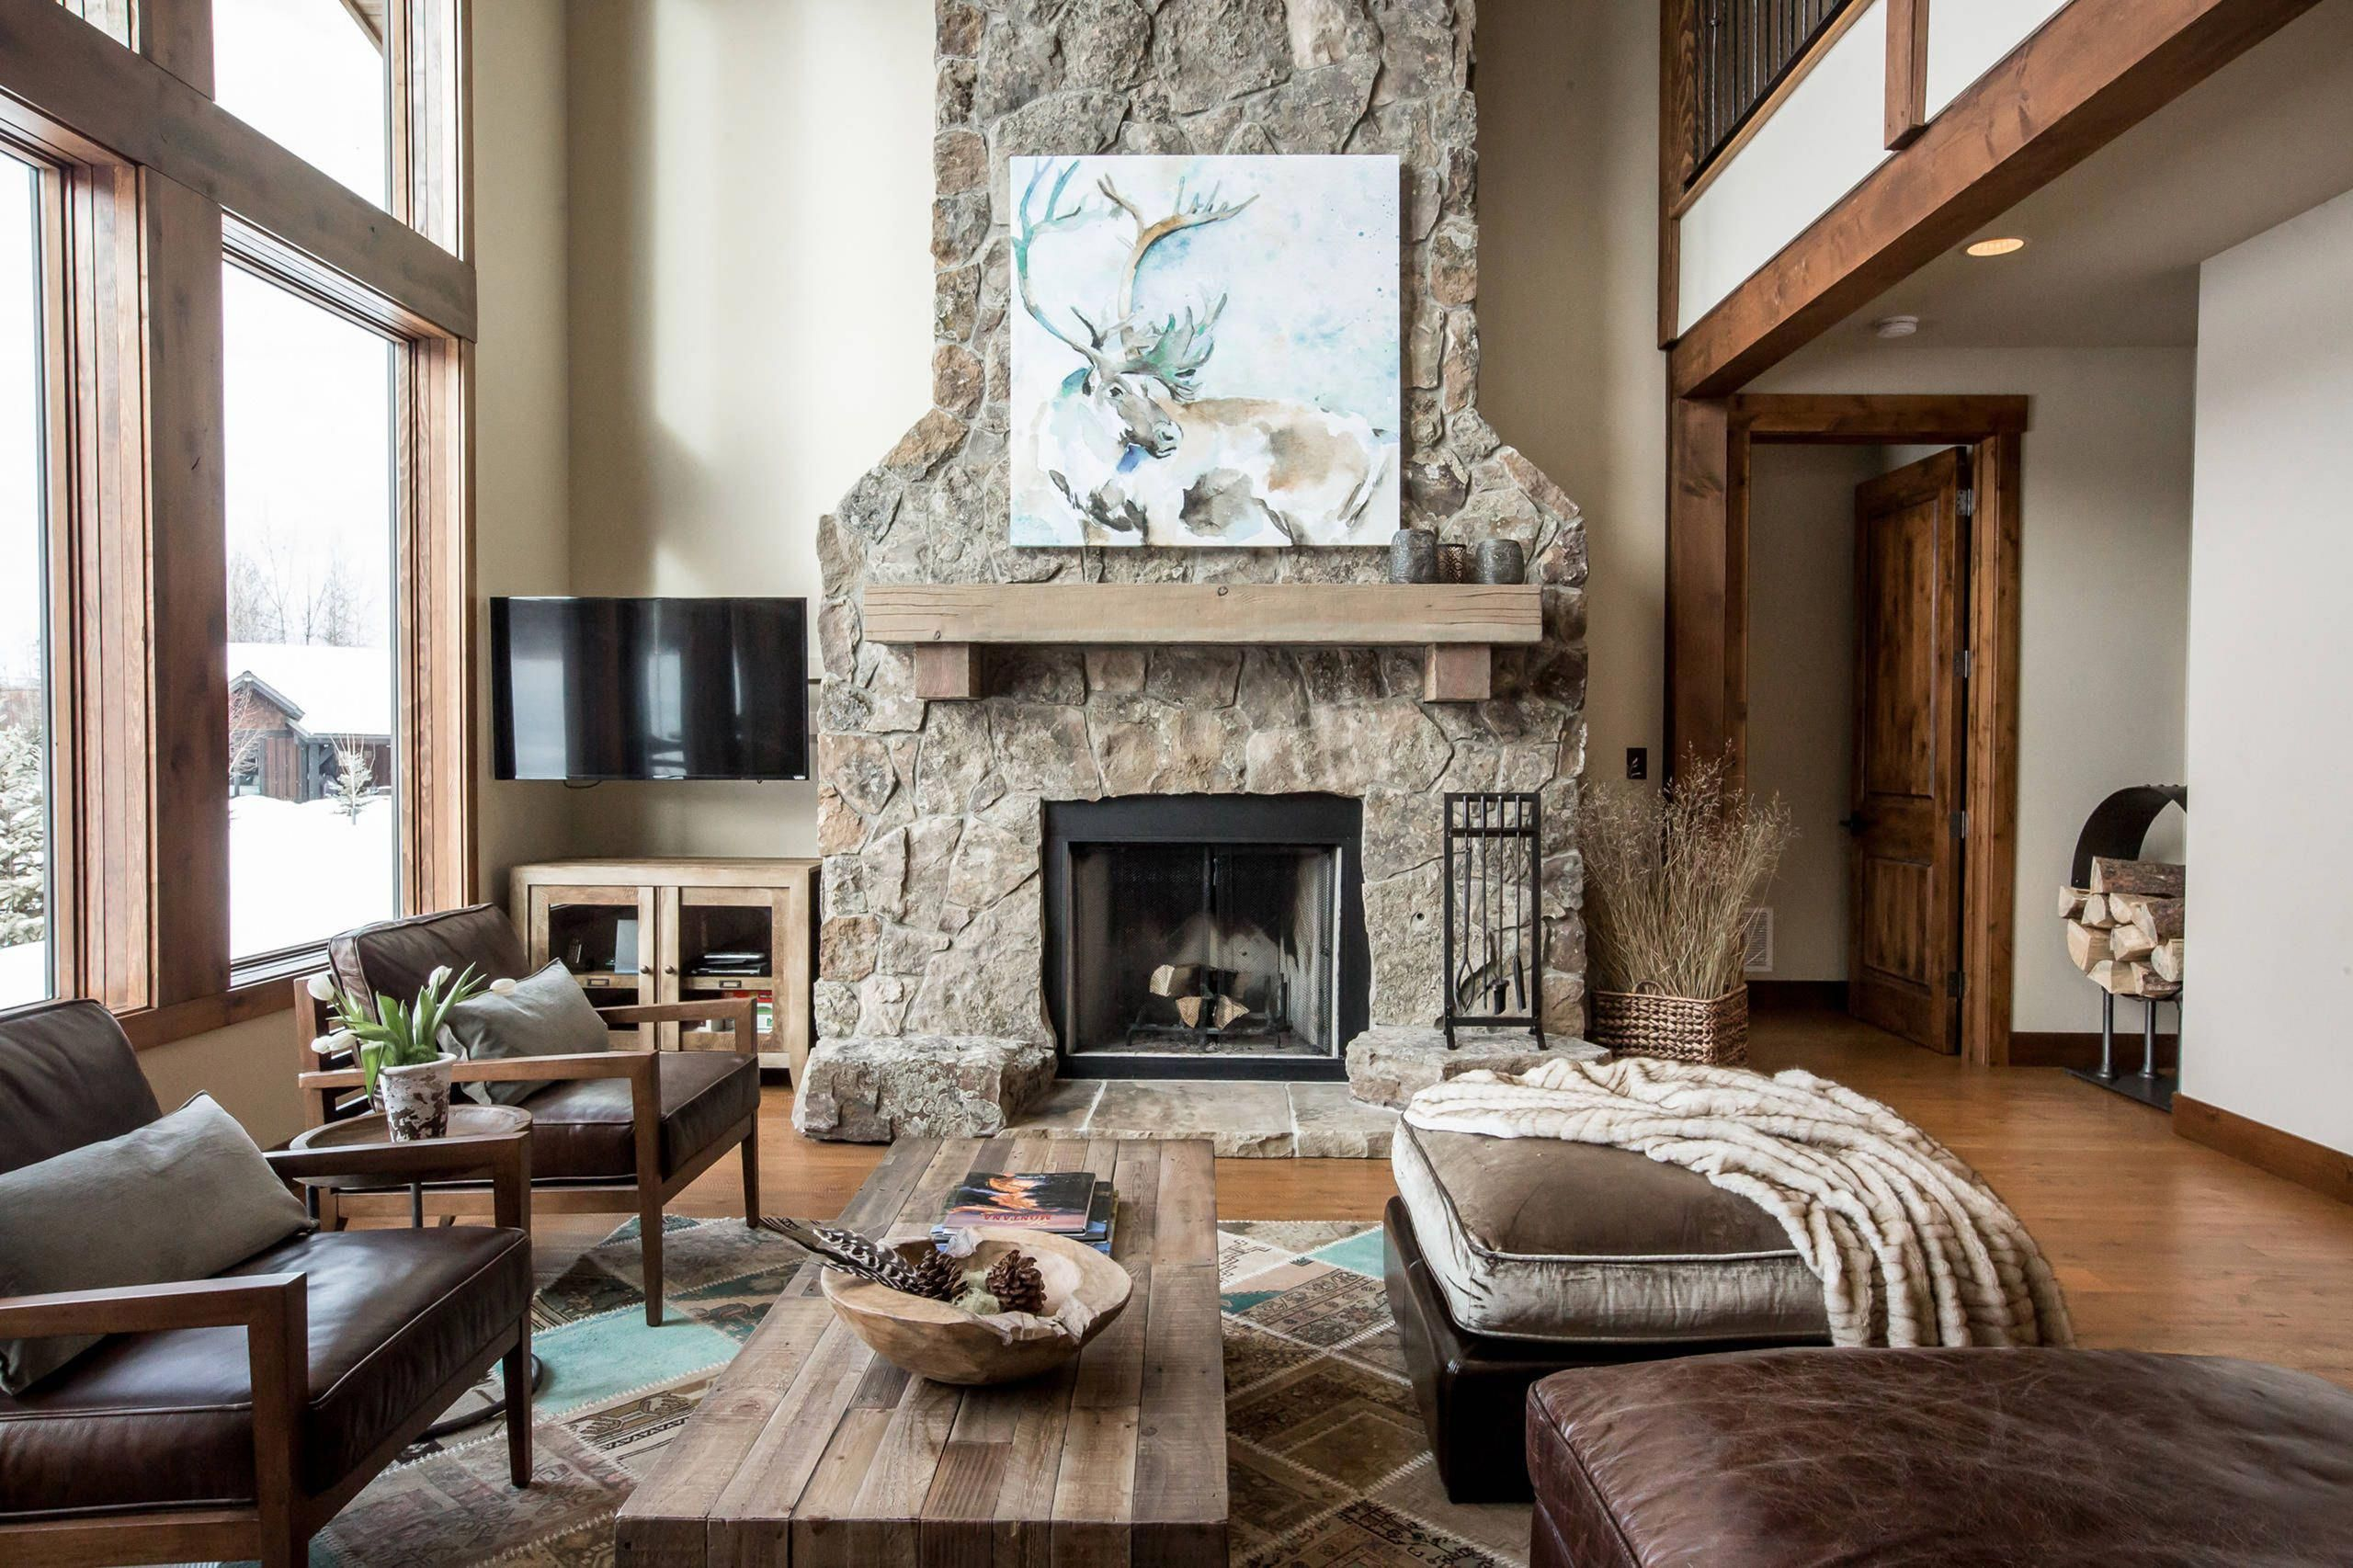 The Very Best Method To Go For Easy Charm In Interior Decoration Is To Make The Living Room Decor Rustic Rustic Living Room Design Farmhouse Style Living Room